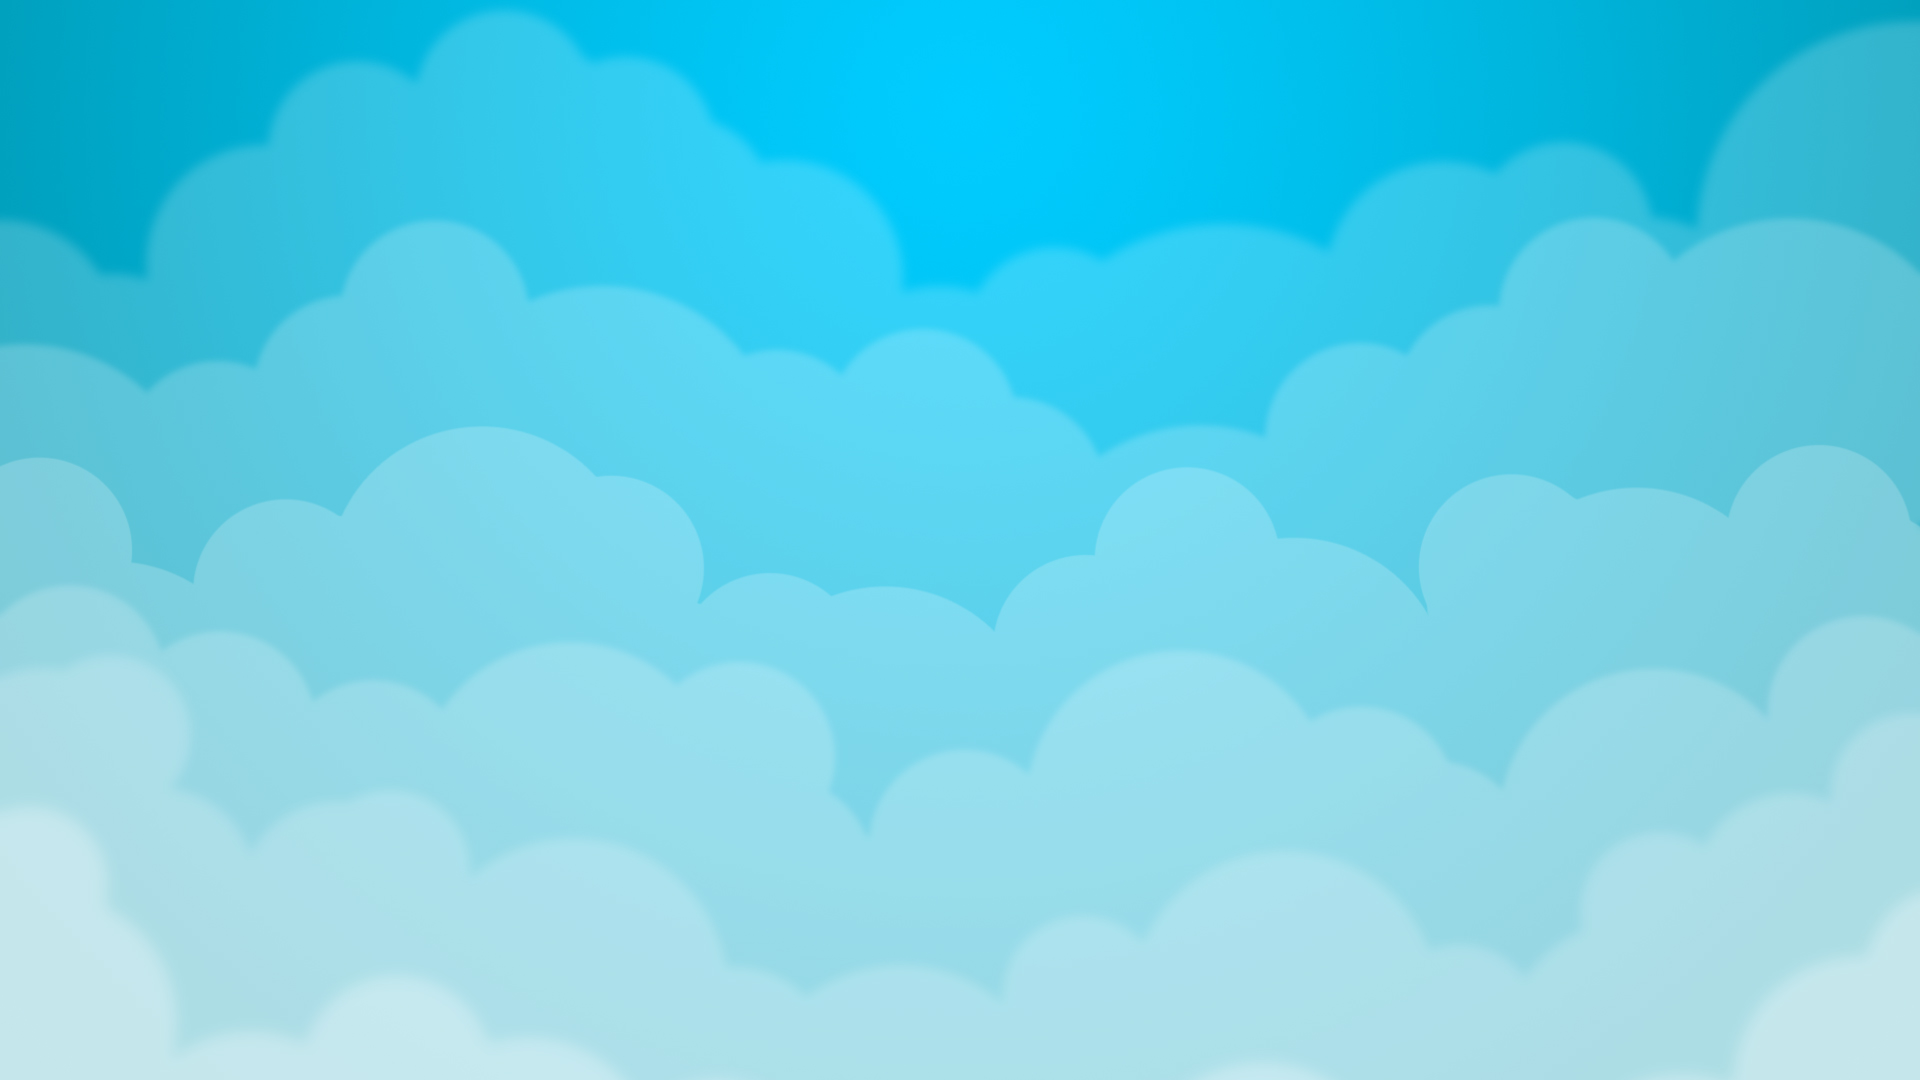 Blue cloud wallpaper